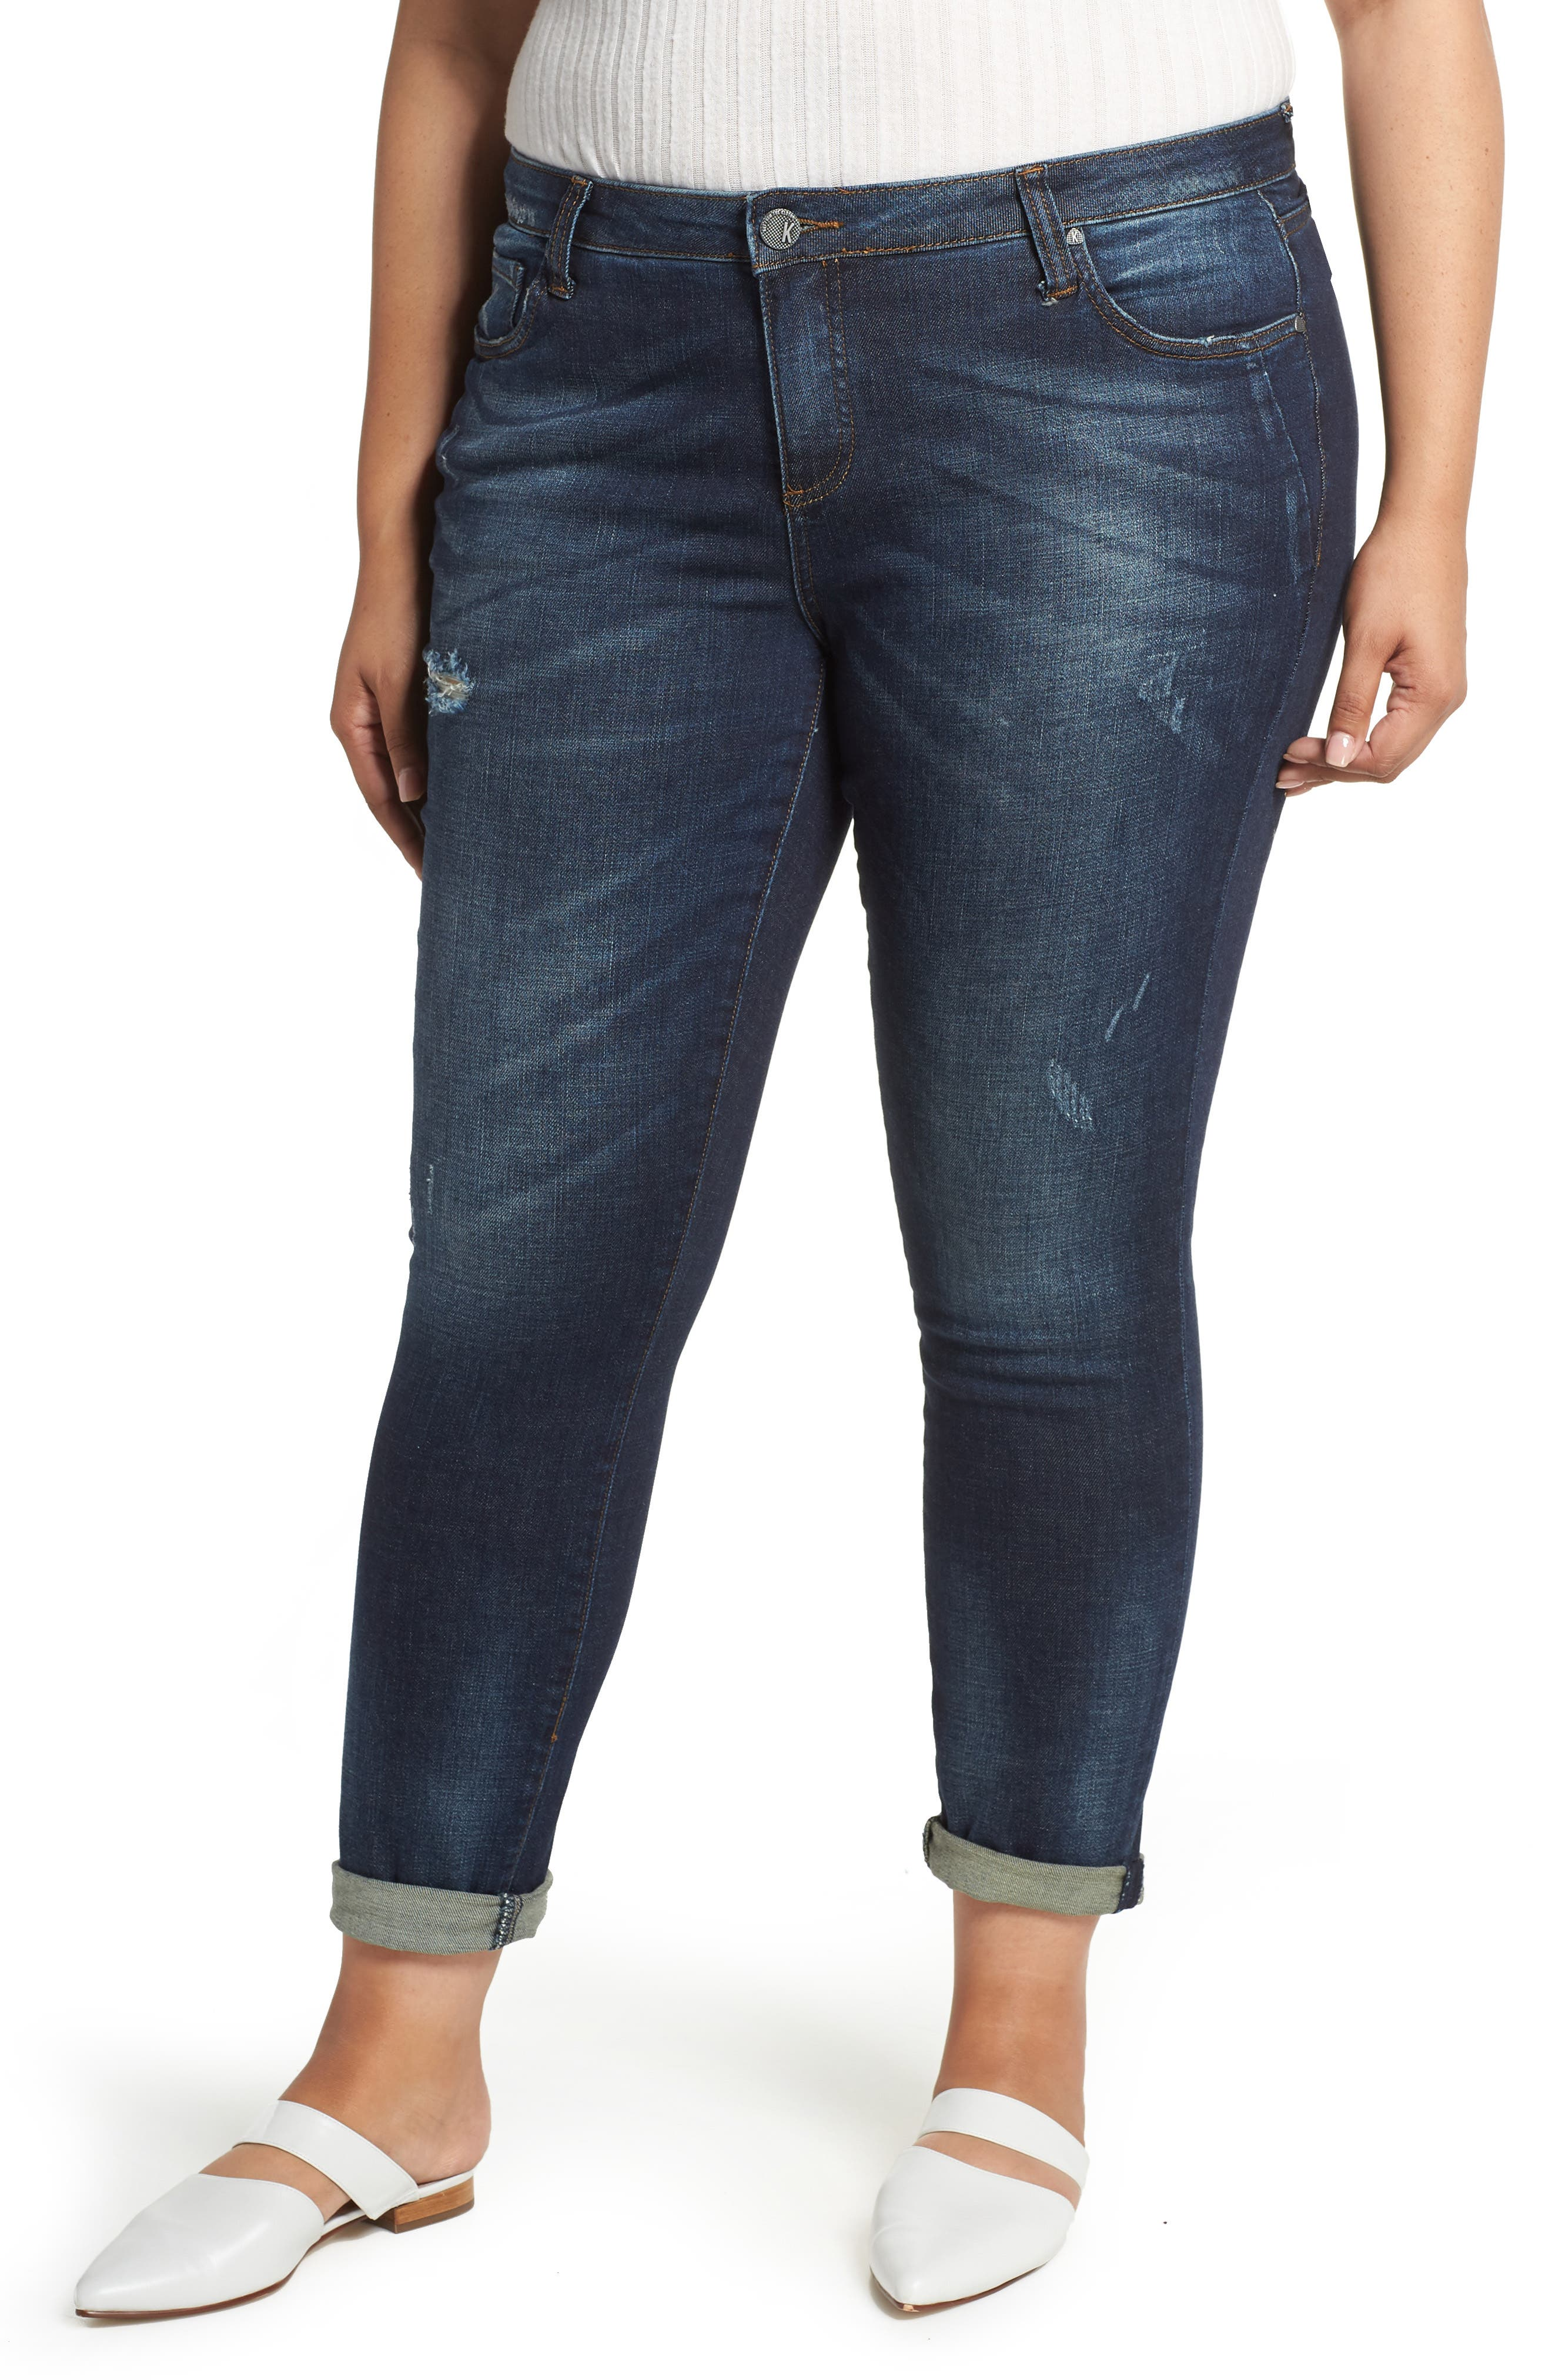 Plus Size Kut From The Kloth Catherine Slouchy Boyfriend Jeans, Blue